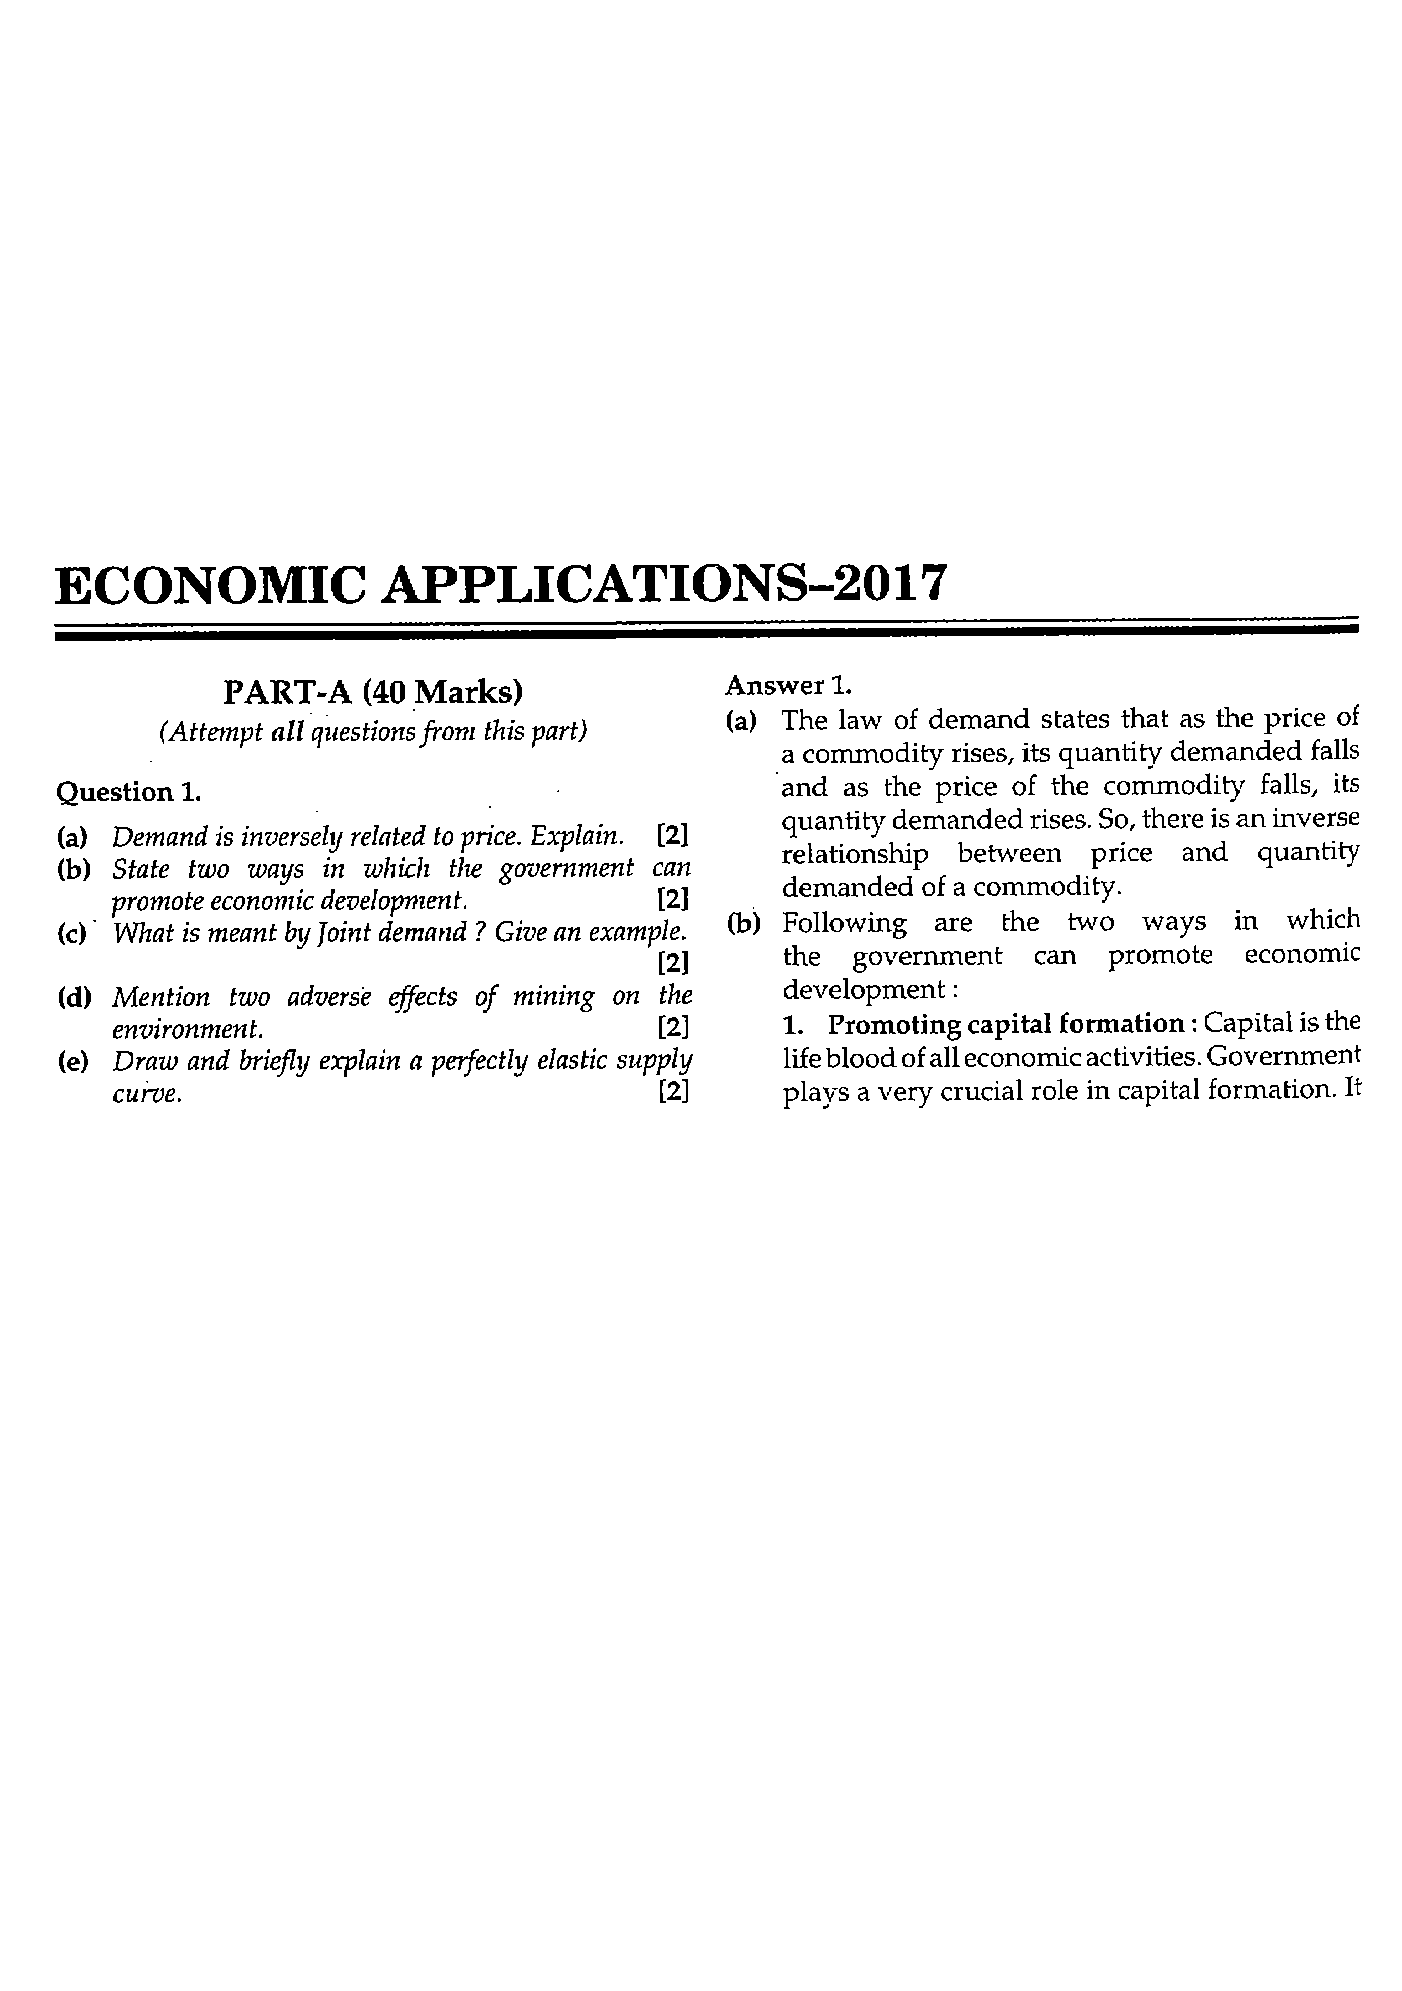 ICSE Class 10 Economic Applications 2017 Question Paper